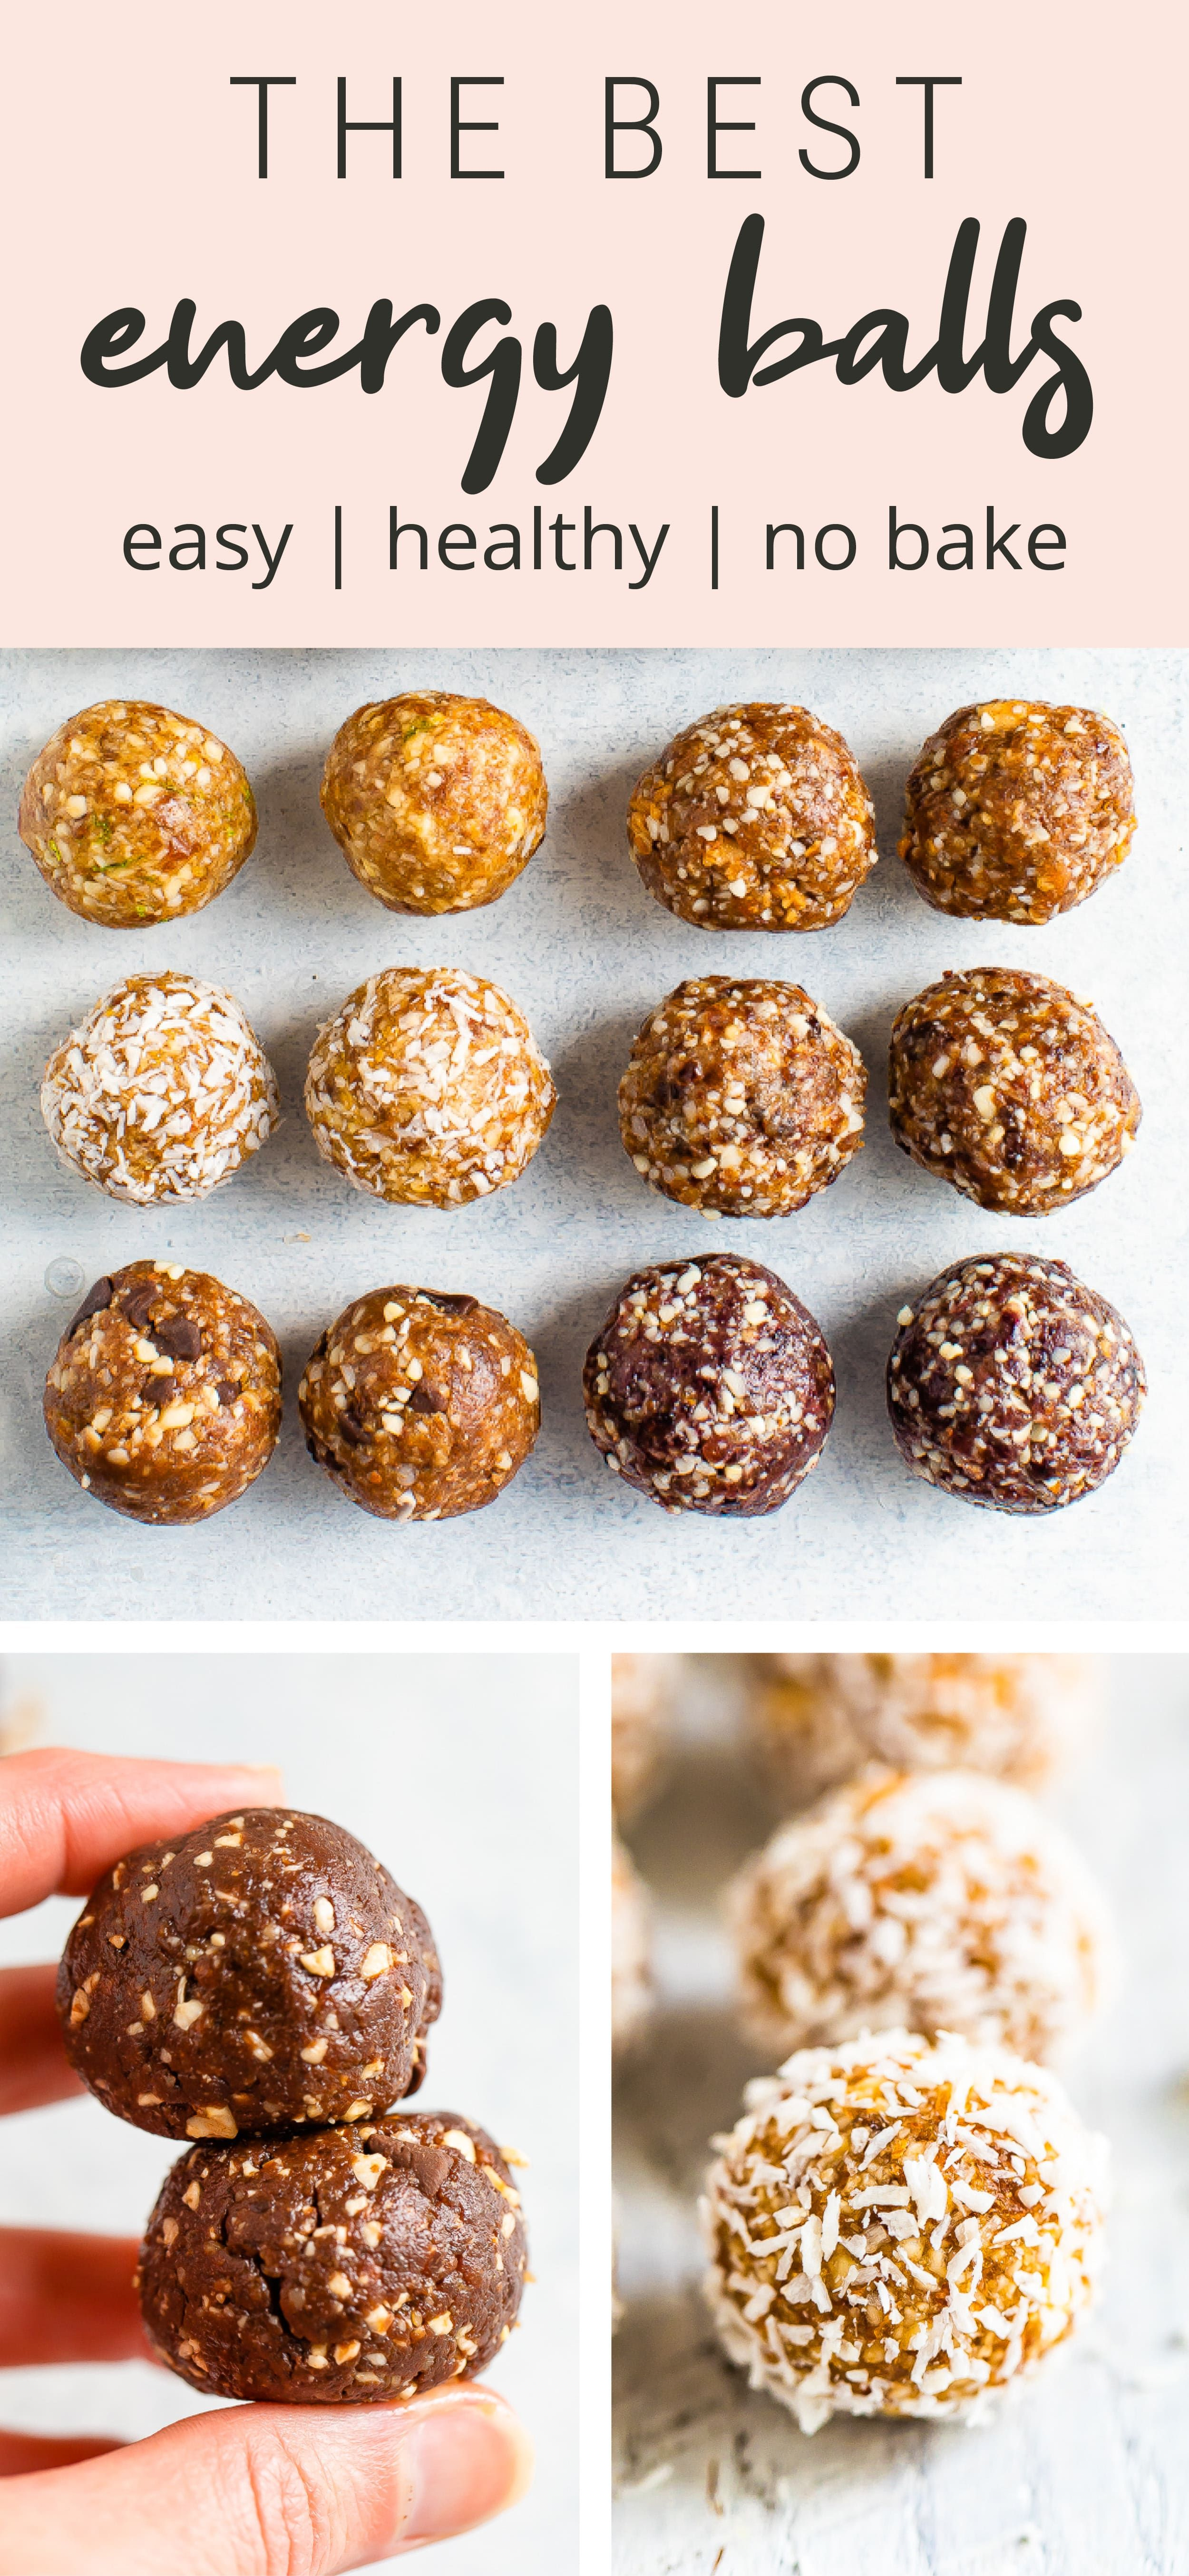 How To Make Date Energy Balls 10 Recipes Eating Bird Food Recipe Protein Power Balls Recipe Energy Ball Recipe Protein Balls Healthy